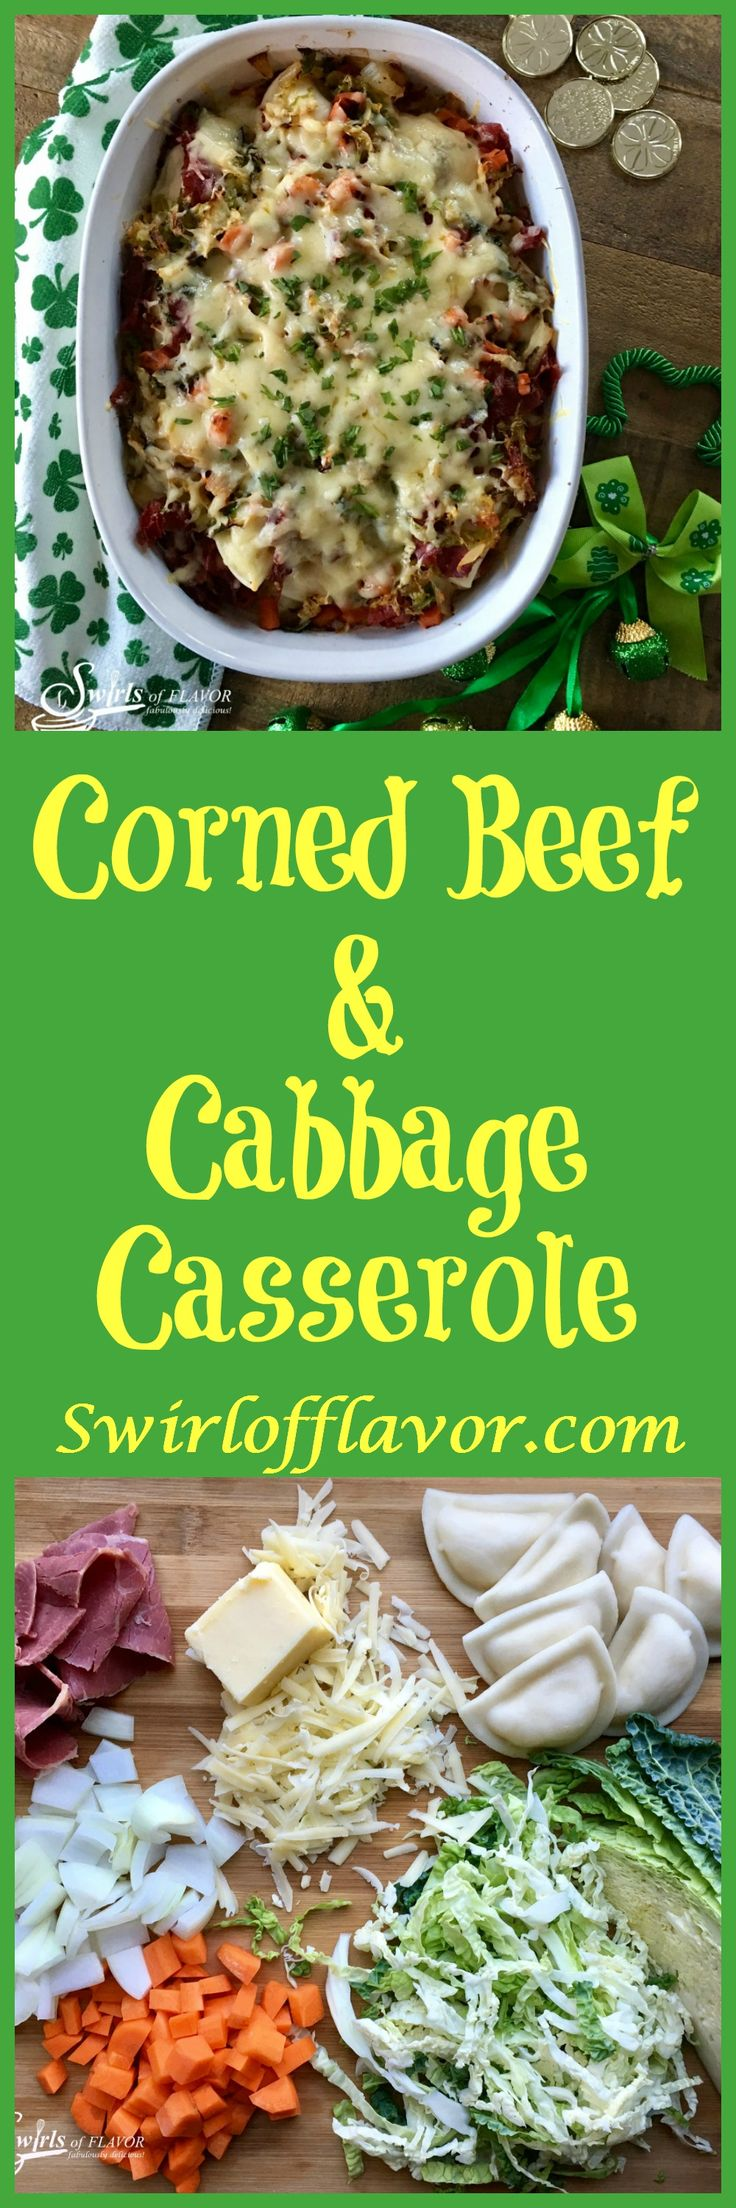 Thinly slice the corned beef. Corned Beef & Cabbage Casserole   Recipe   Corn beef ...